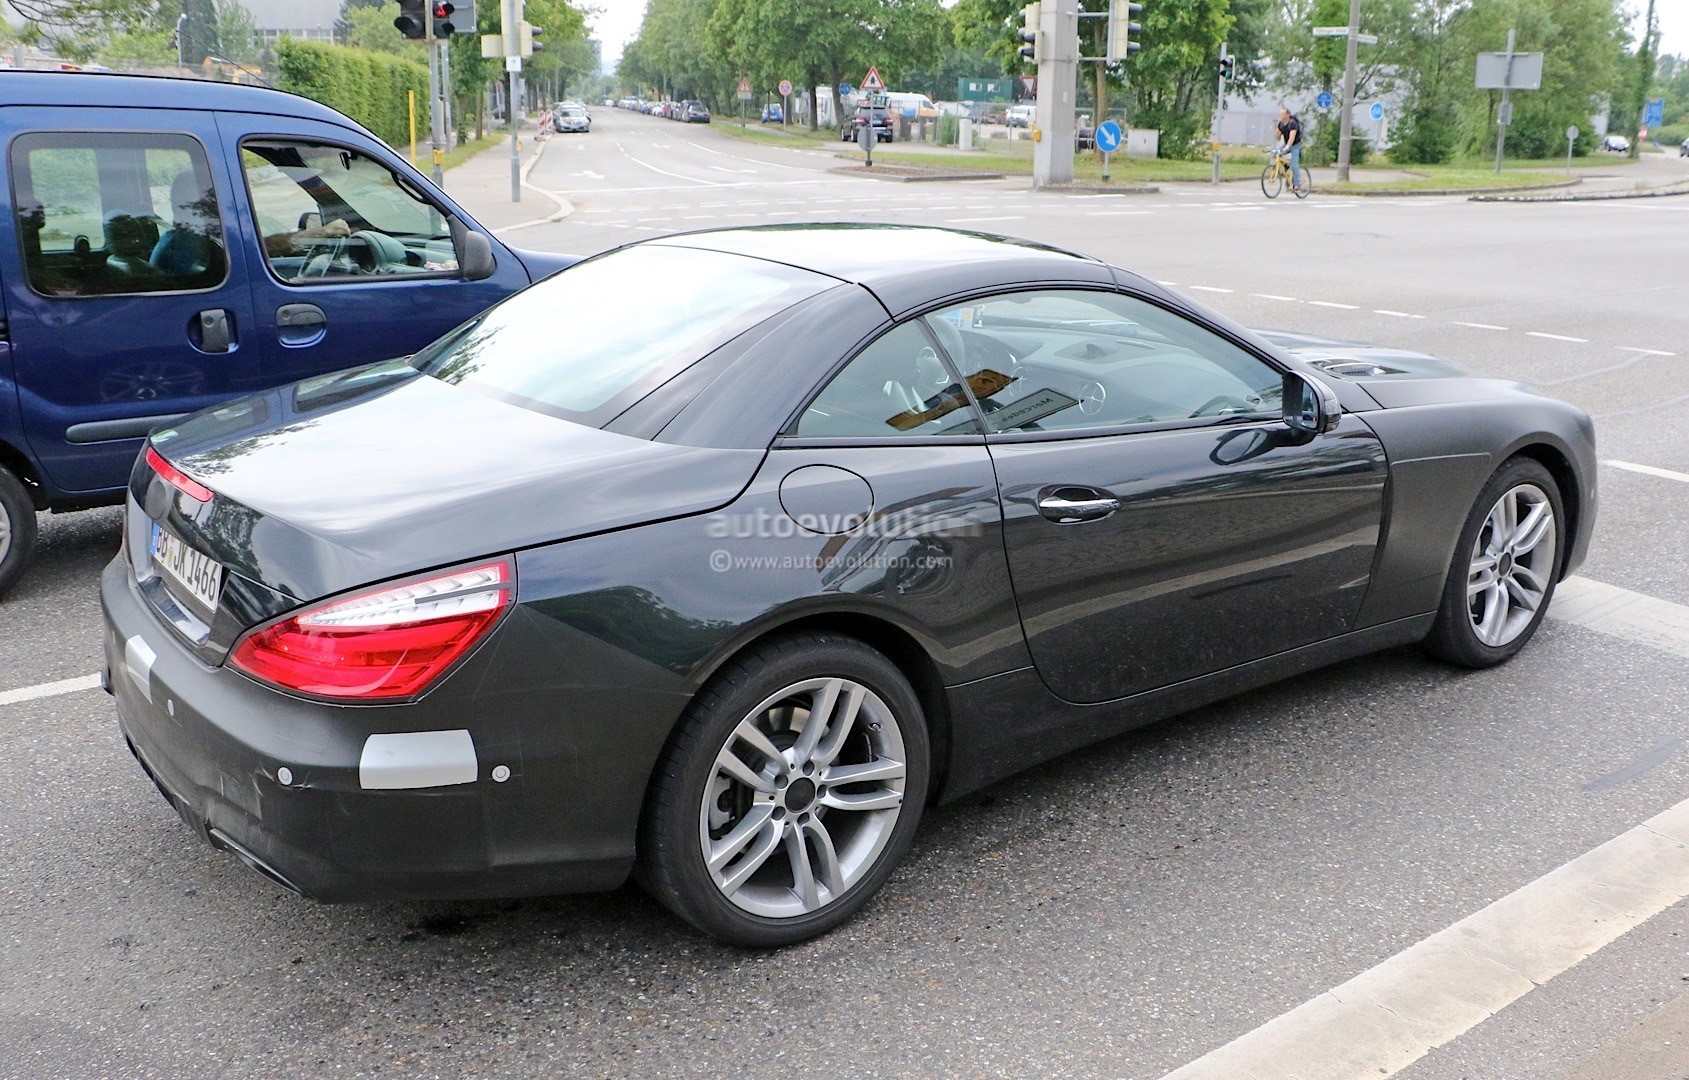 2015 - [Mercedes] SL Restylé [R231] - Page 2 Mercedes-benz-sl-facelift-spied-again-more-interior-details-come-to-light-photo-gallery_5